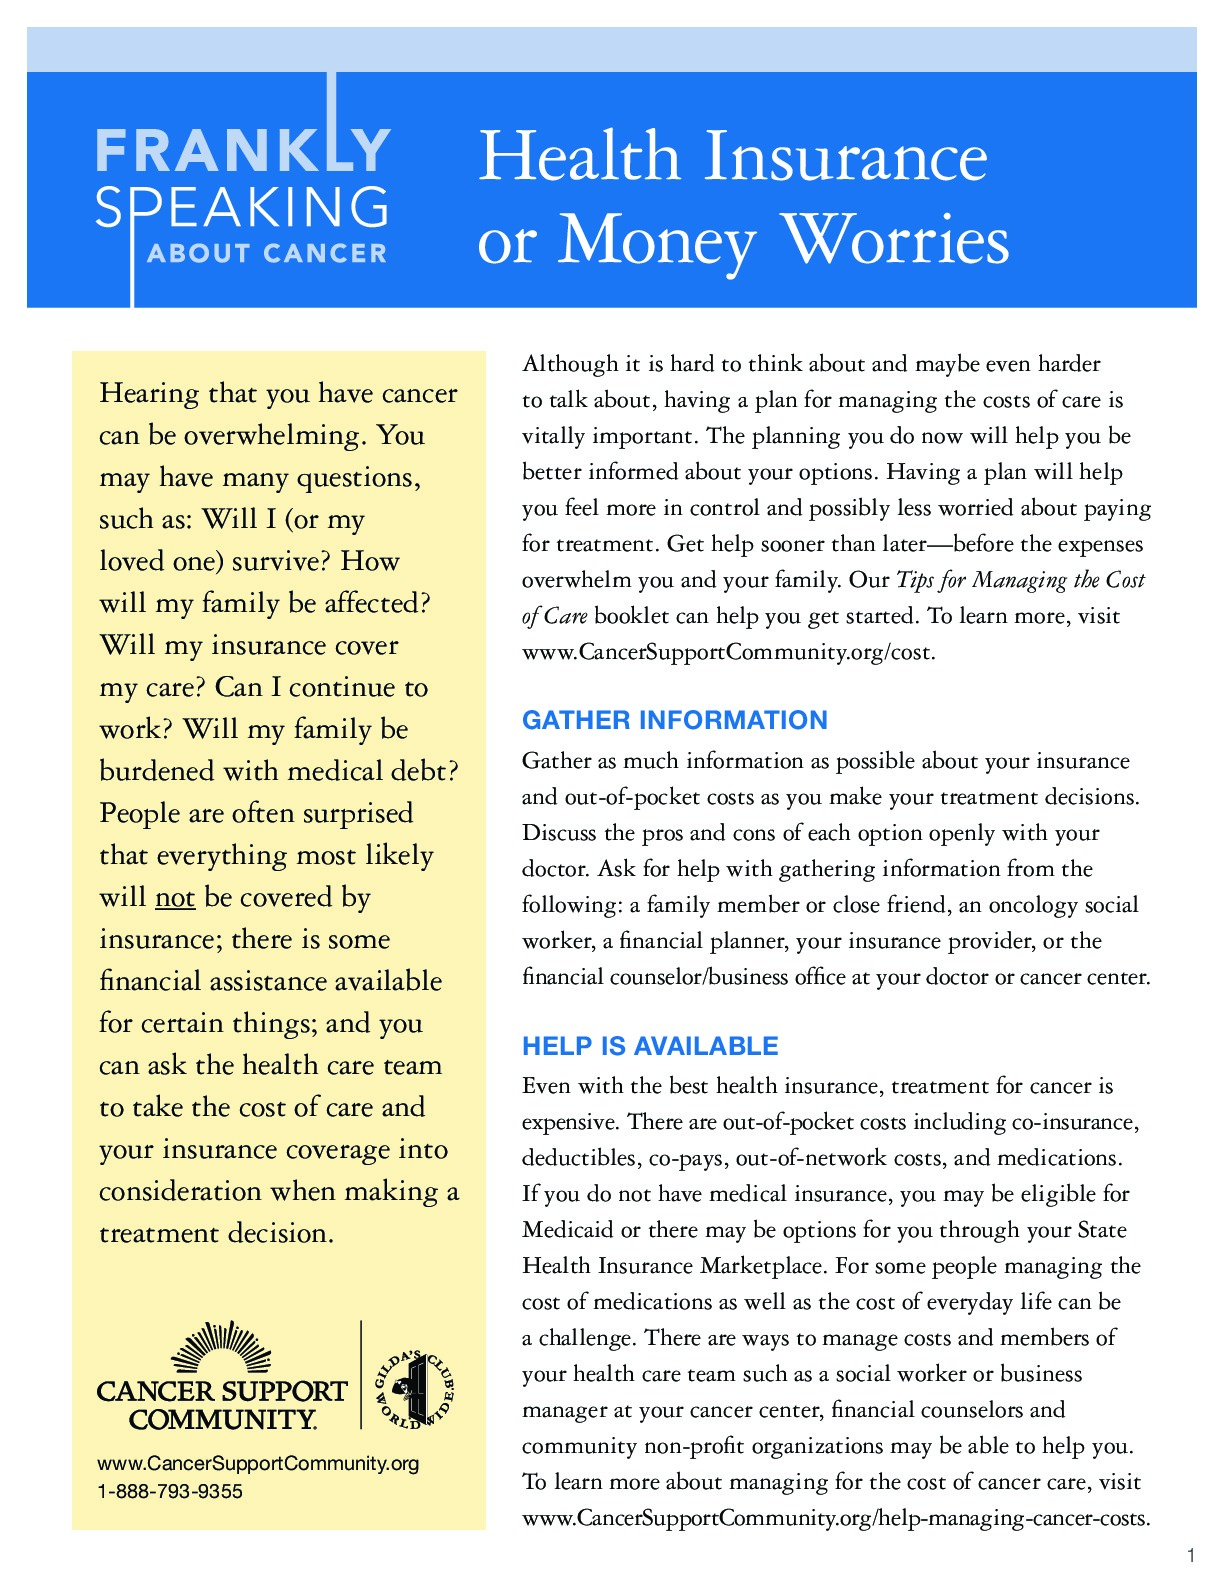 Health Insurance or Money Worries